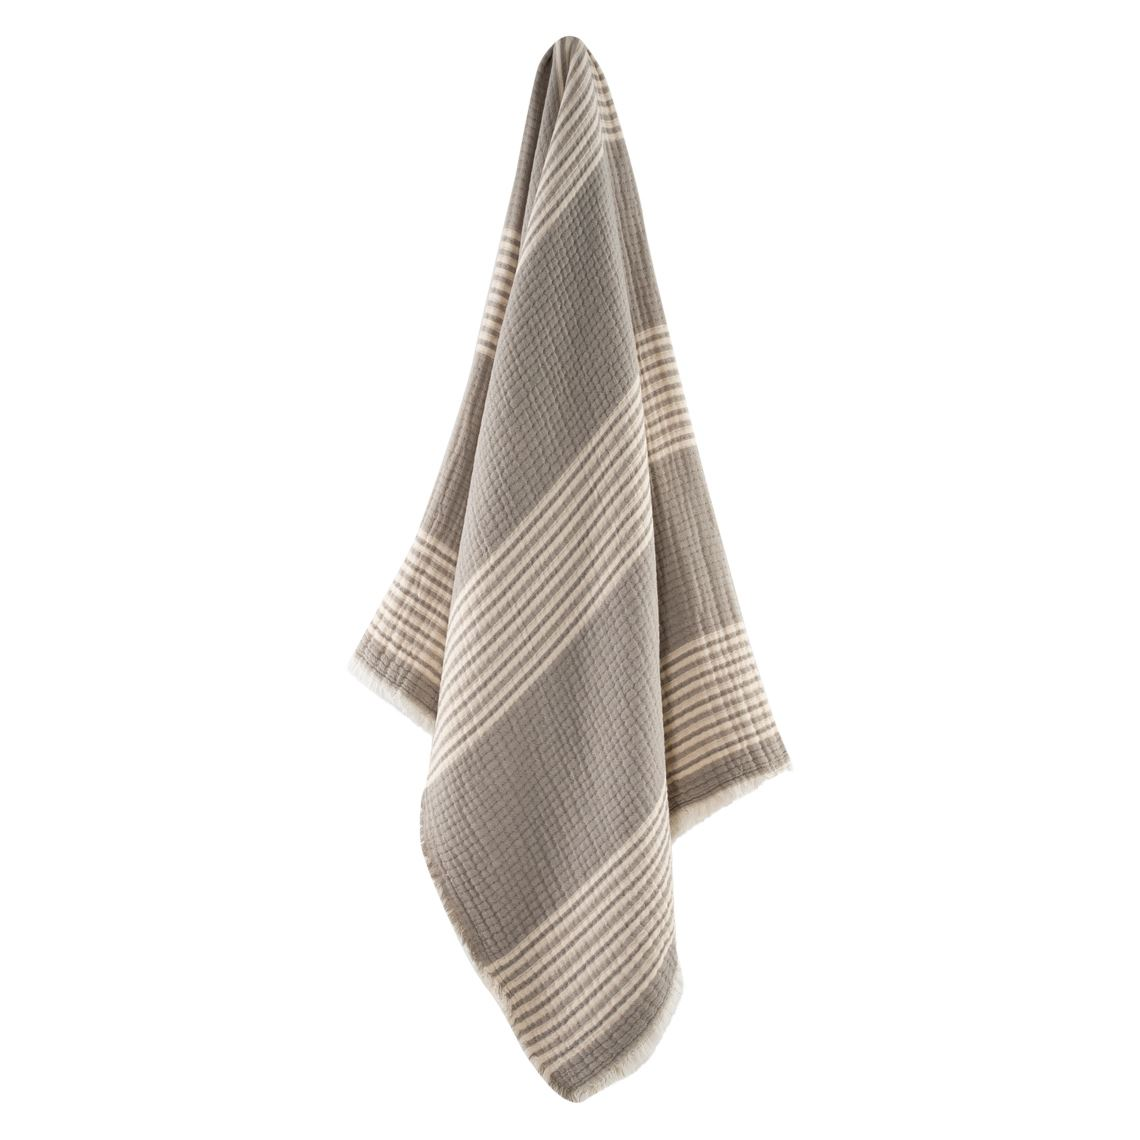 Adley Throw Size W 150cm x D 1cm x H 180cm in Grey/White Freedom